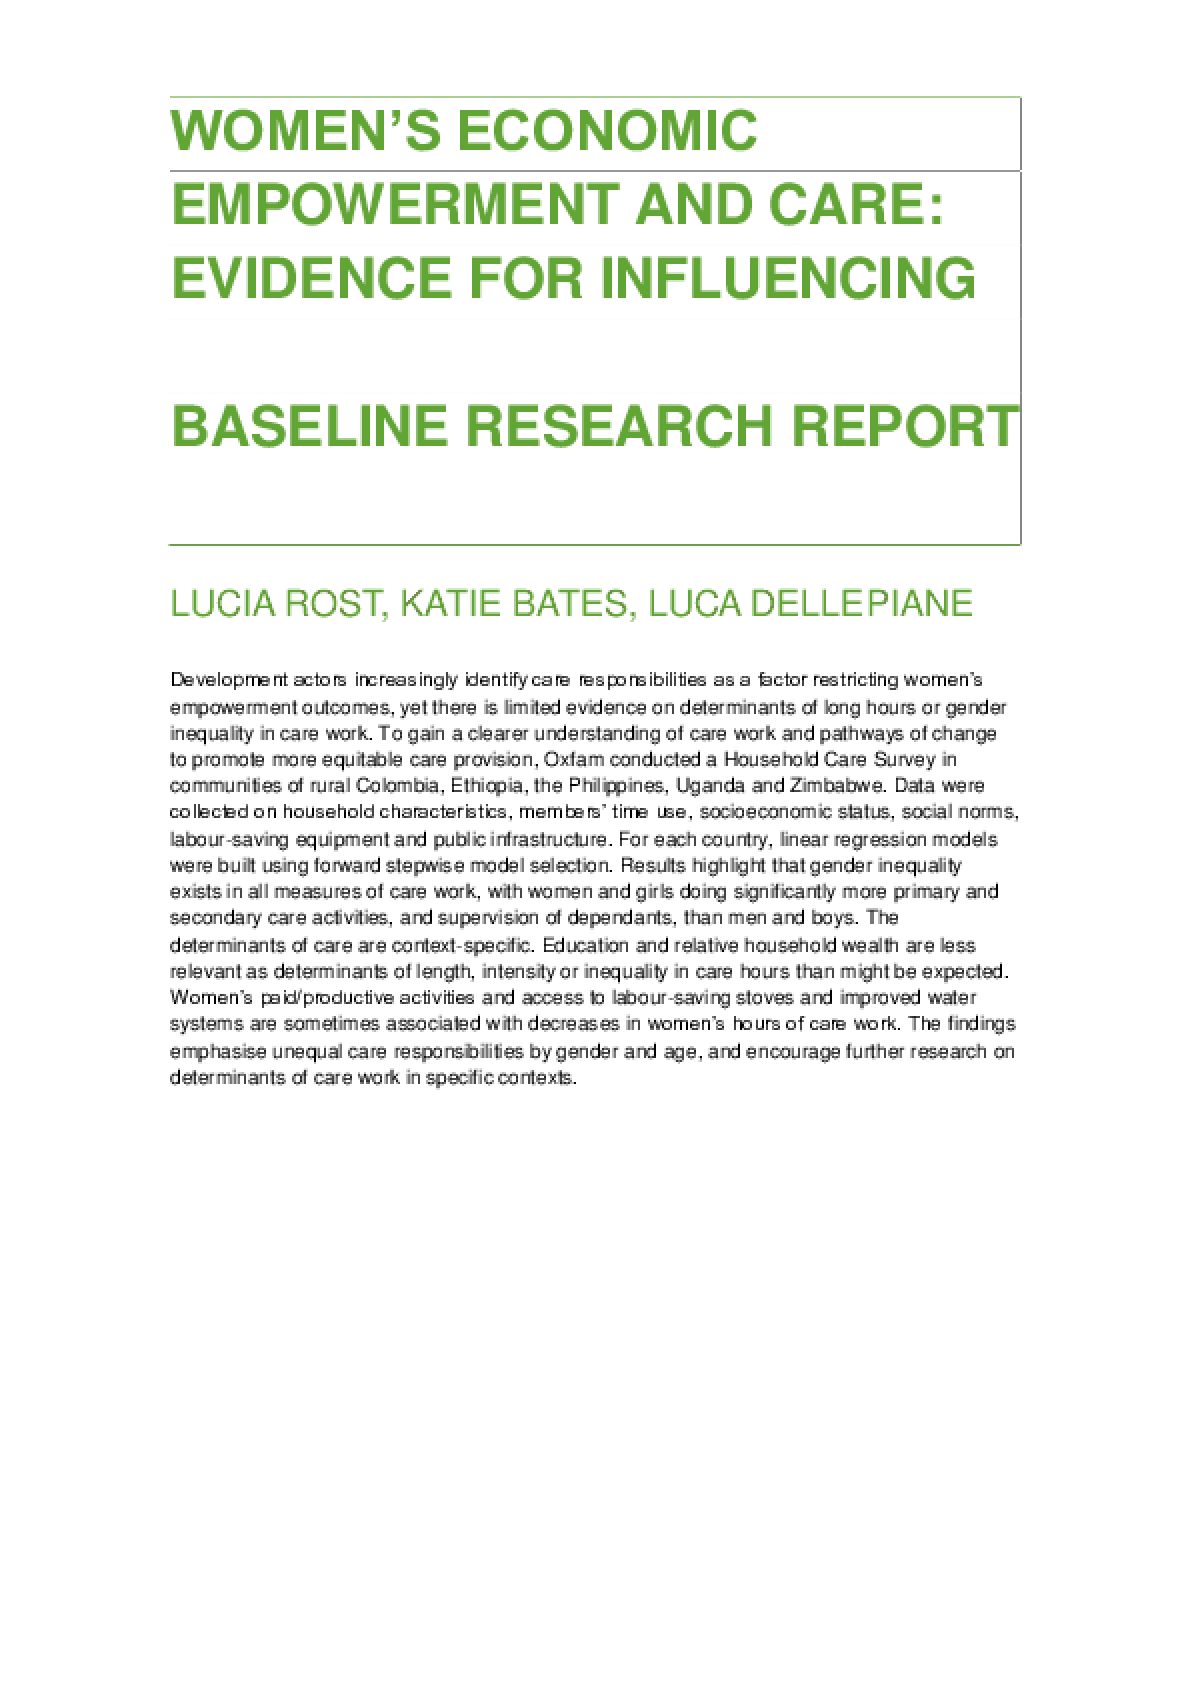 Women's Economic Empowerment and Care: Evidence for influencing